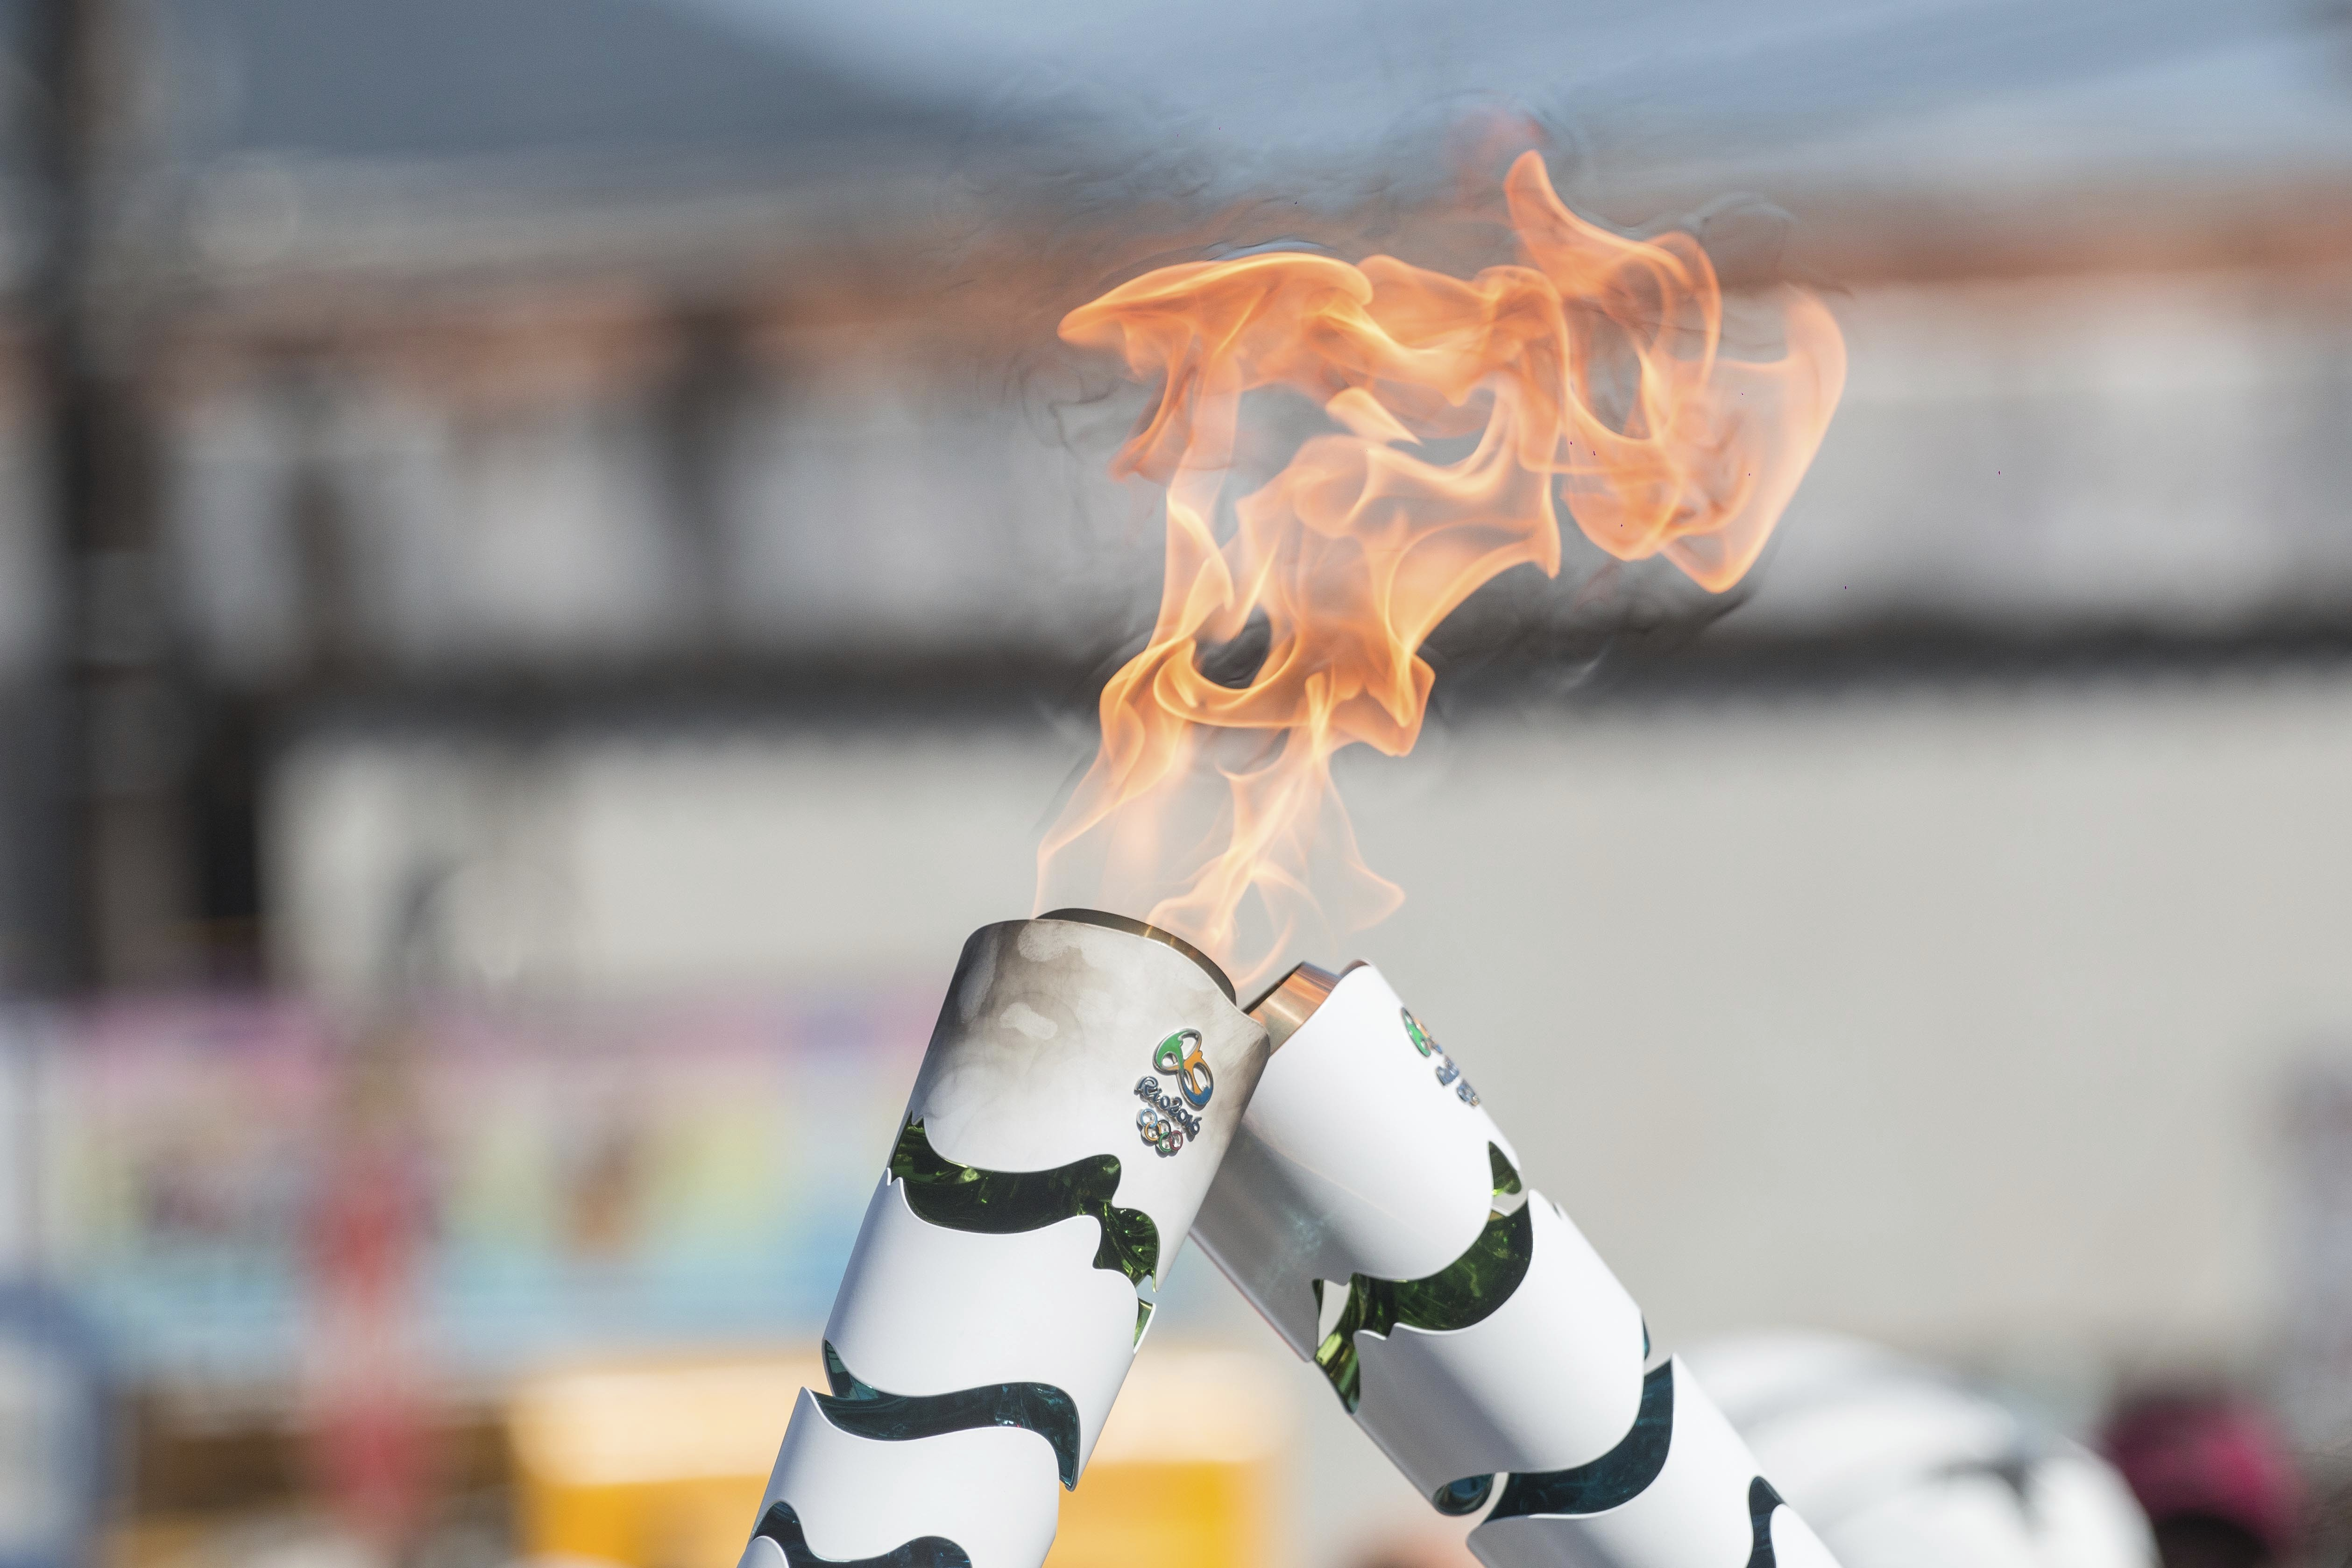 The Olympic torch and flames during Official Torch Relay on July 23, 2016 in Ubatuba, , Brazil.